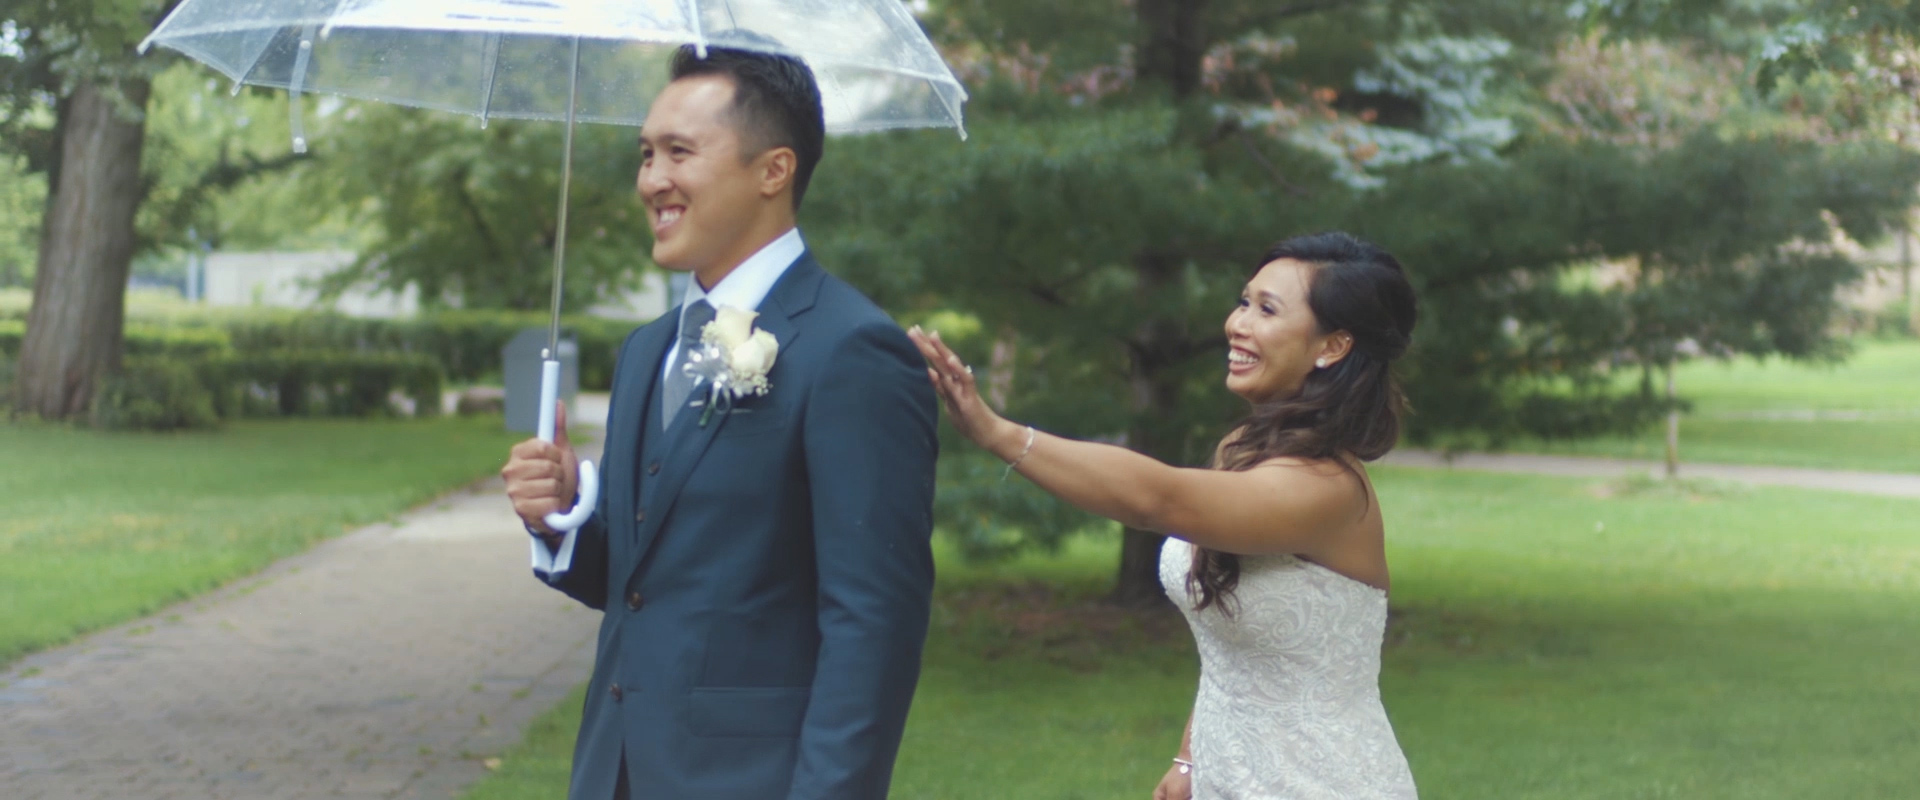 An image of a bride and groom during their first look at the university of Toronto; Toronto Wedding Video blog